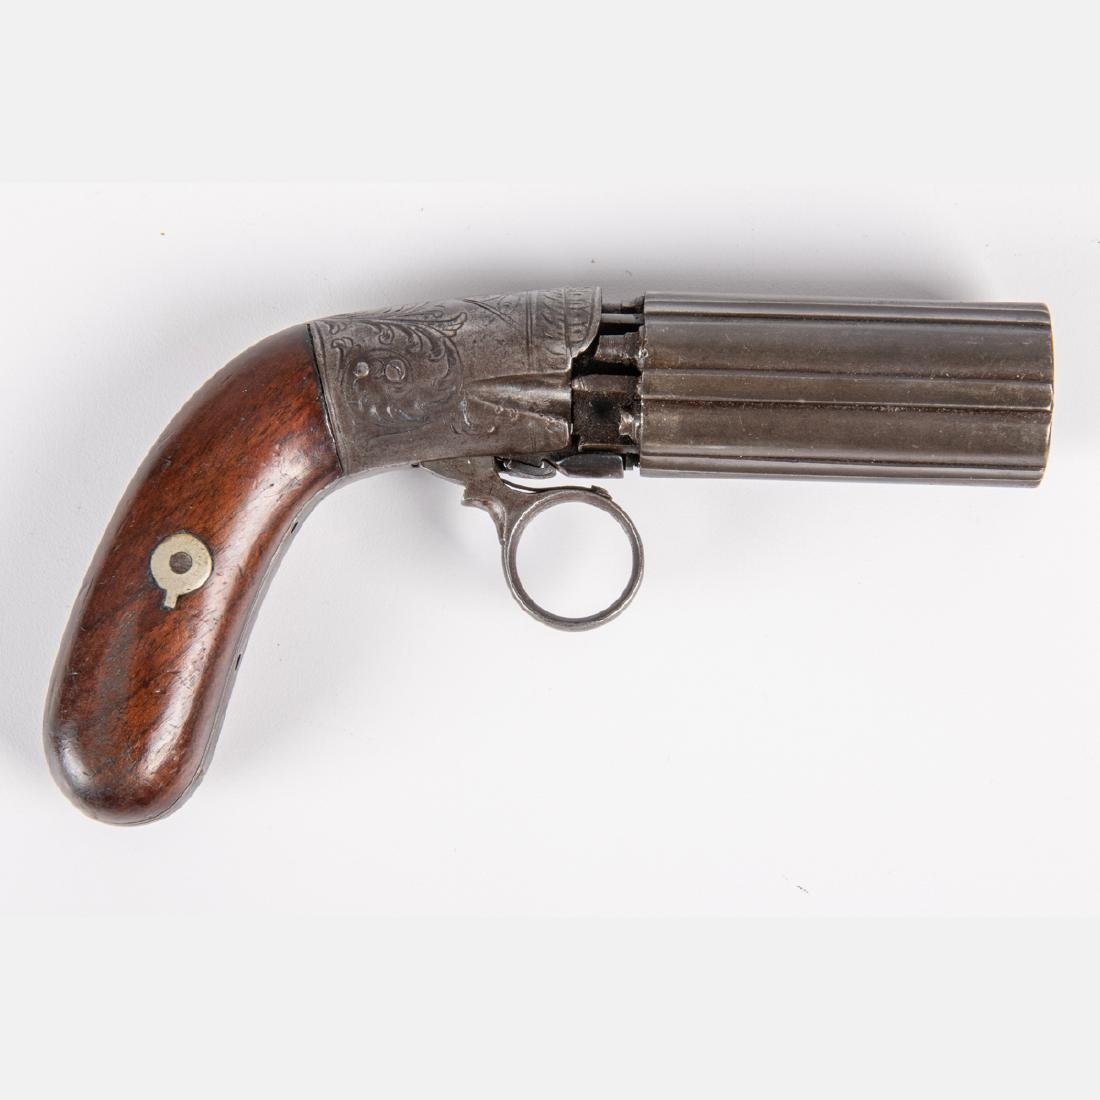 An Antique Six Shot Percussion Pepperbox Revolver, 19th